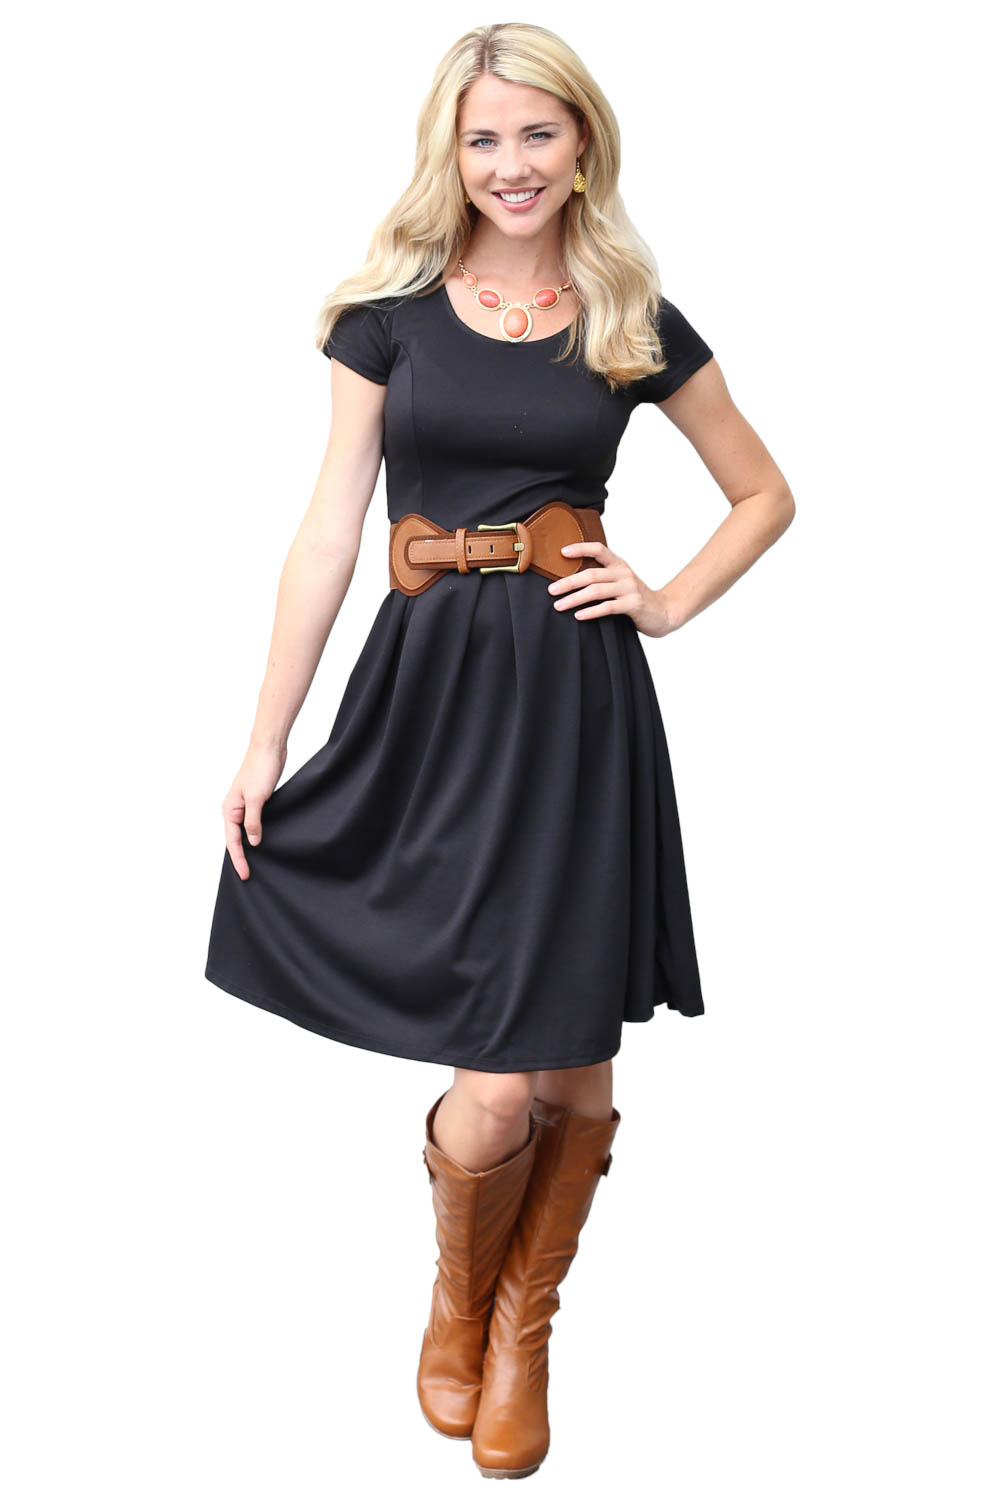 Find modest Apostolic clothing for today's modern women at Dainty Jewell's.